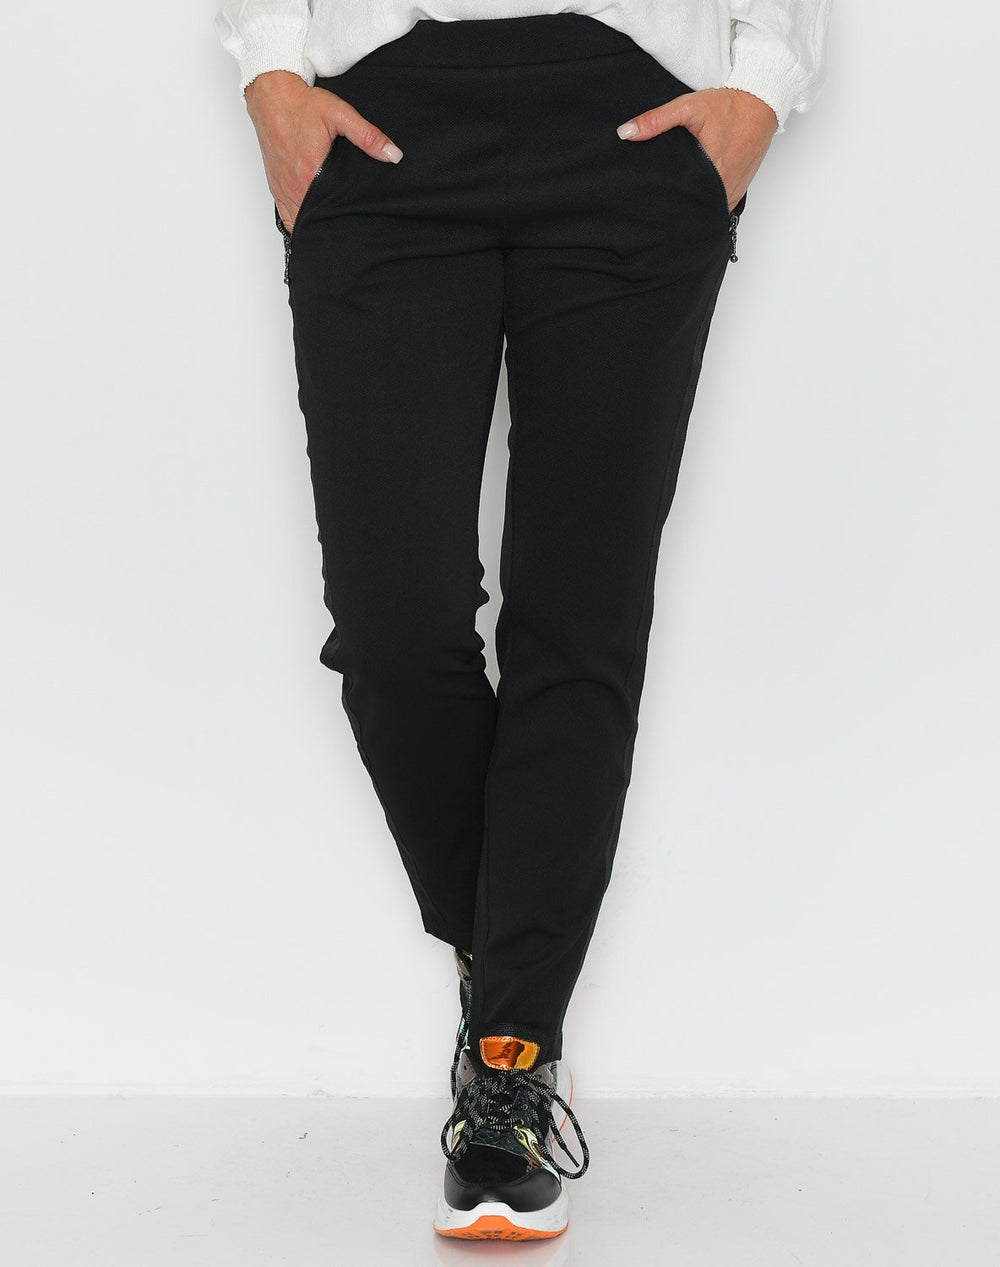 Kaffe KAgloria pants black deep - Online-Mode